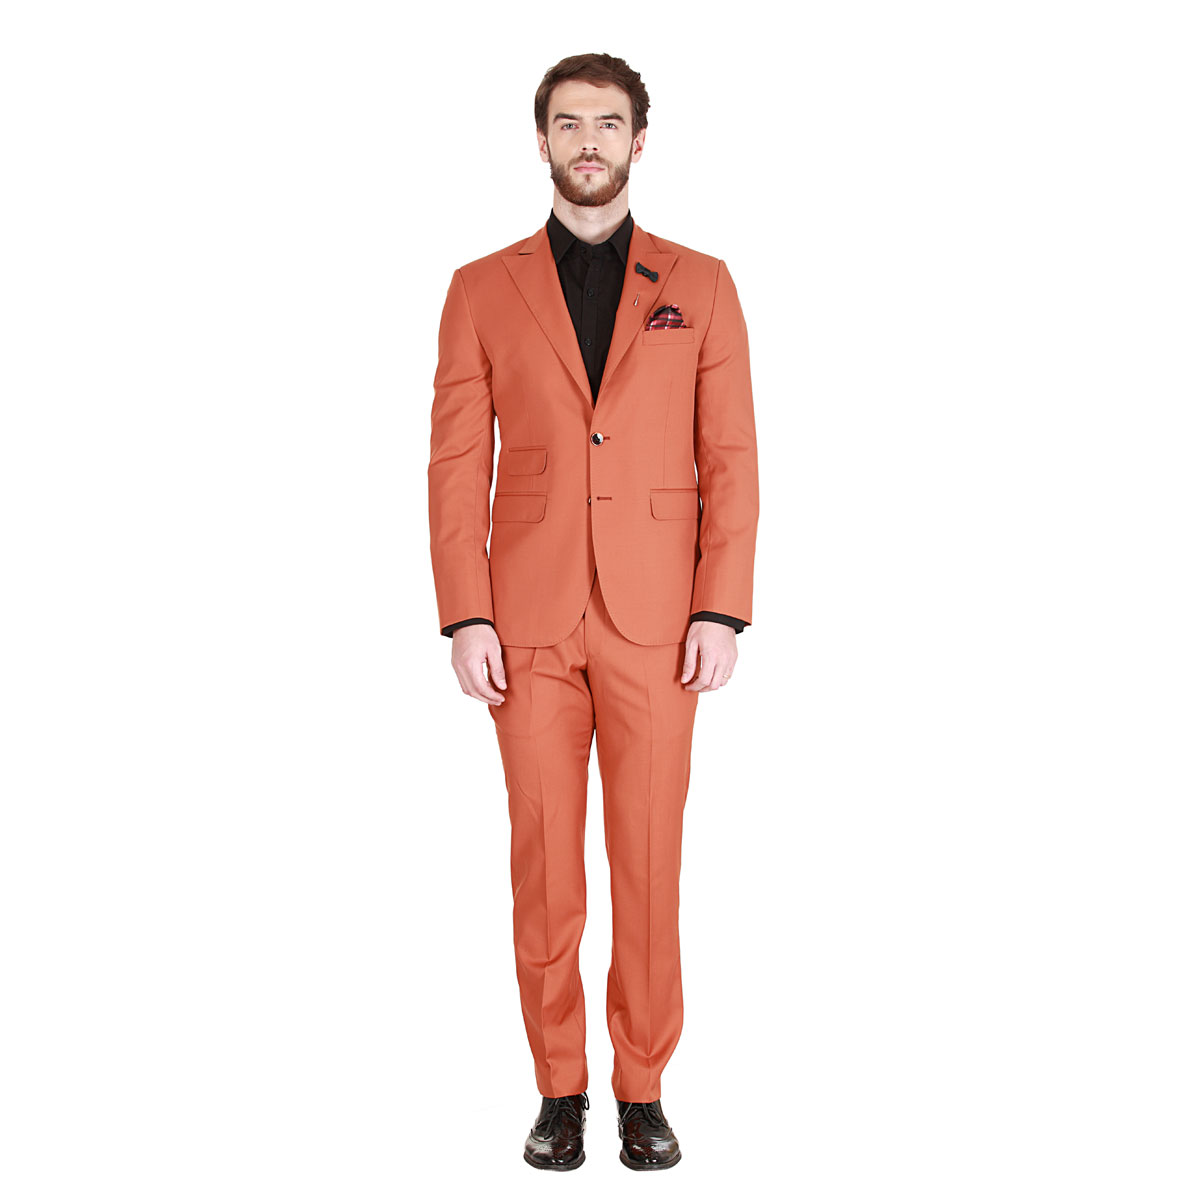 Suit clothing stores